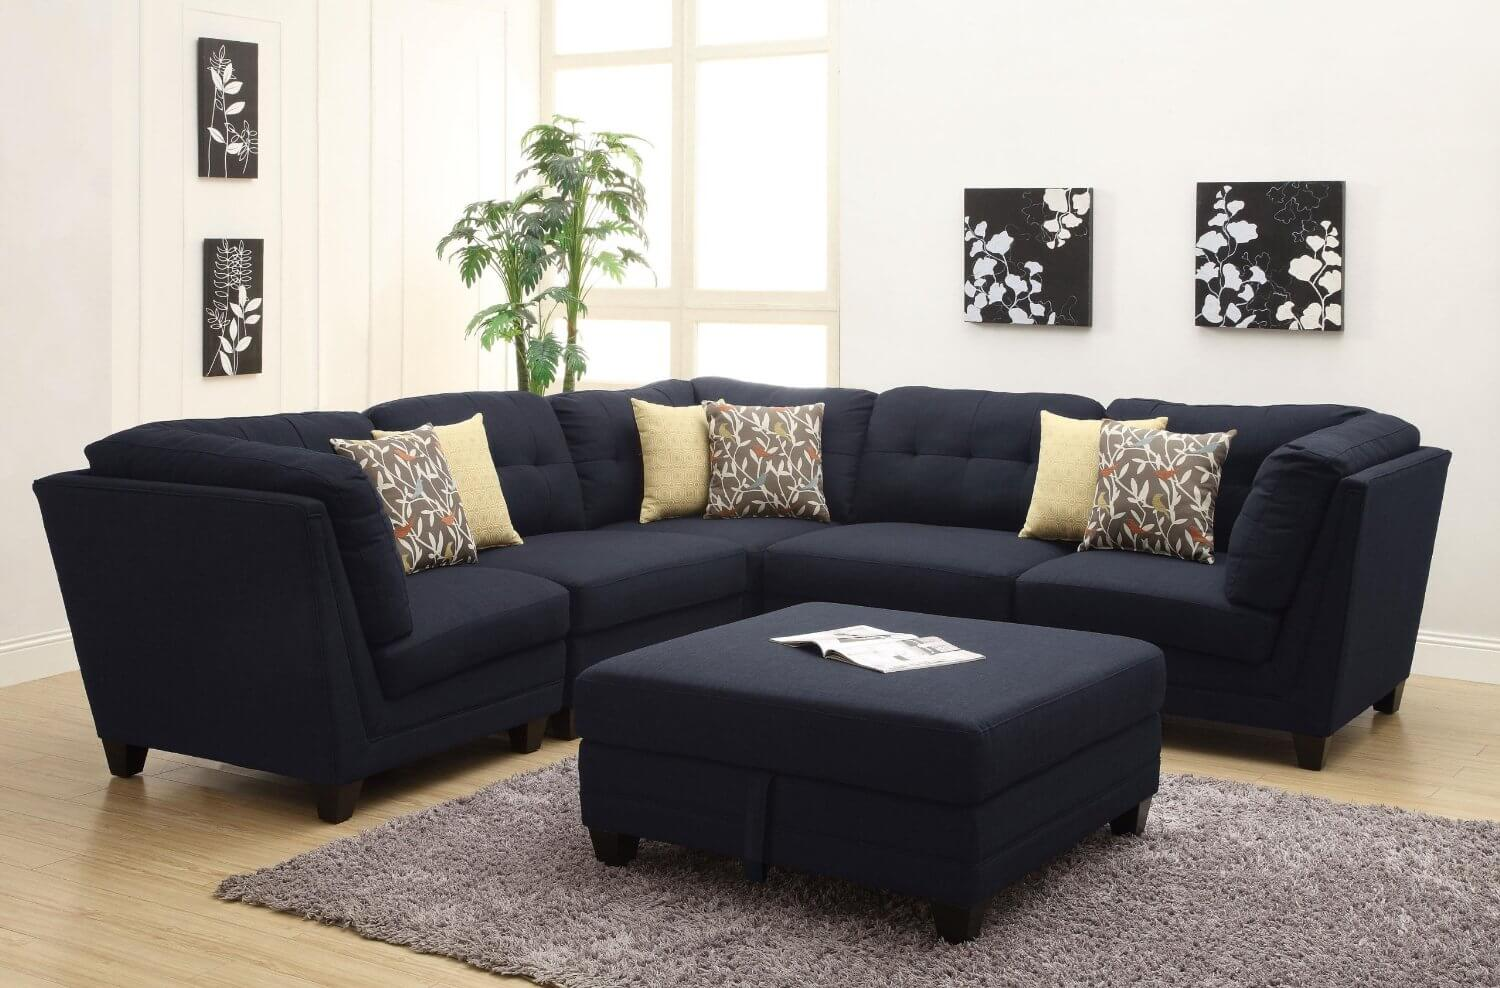 100 Awesome Sectional Sofas Under 1 000 2018